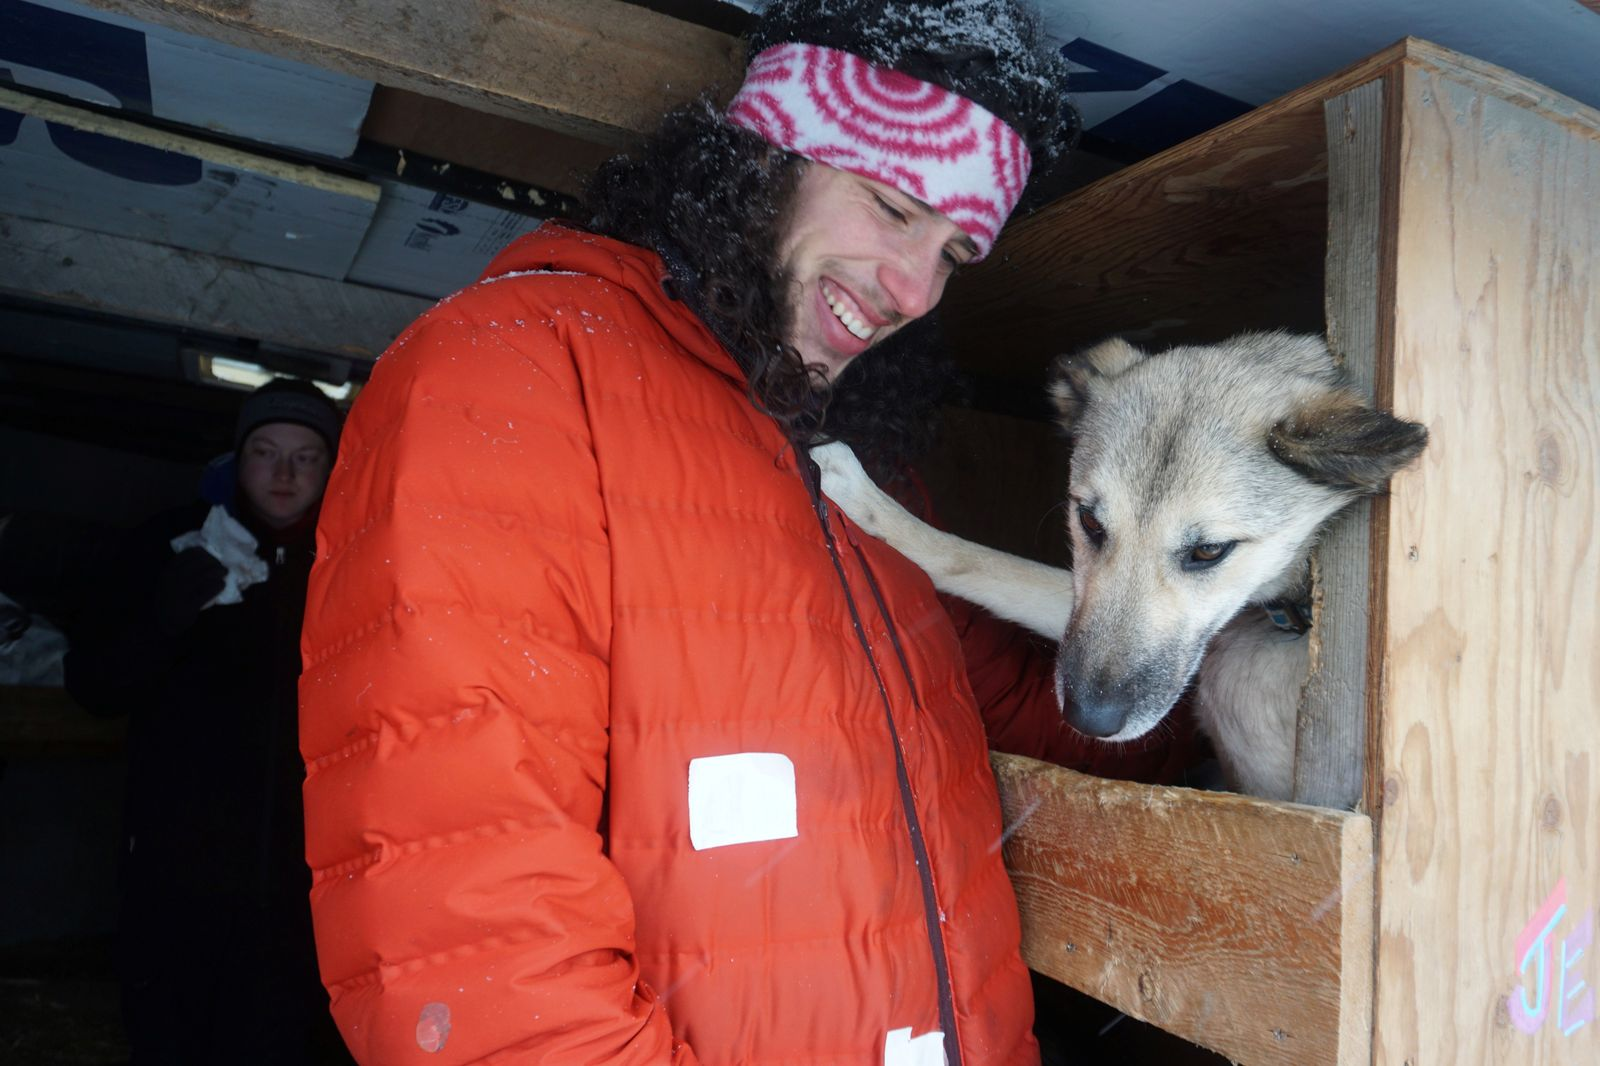 Musher Sean Underwood, a dog handler who became a last-minute substitute for four-time champion Jeff King, at the ceremonial Anchorage start of the 2020 Iditarod Trail Sled Dog Race